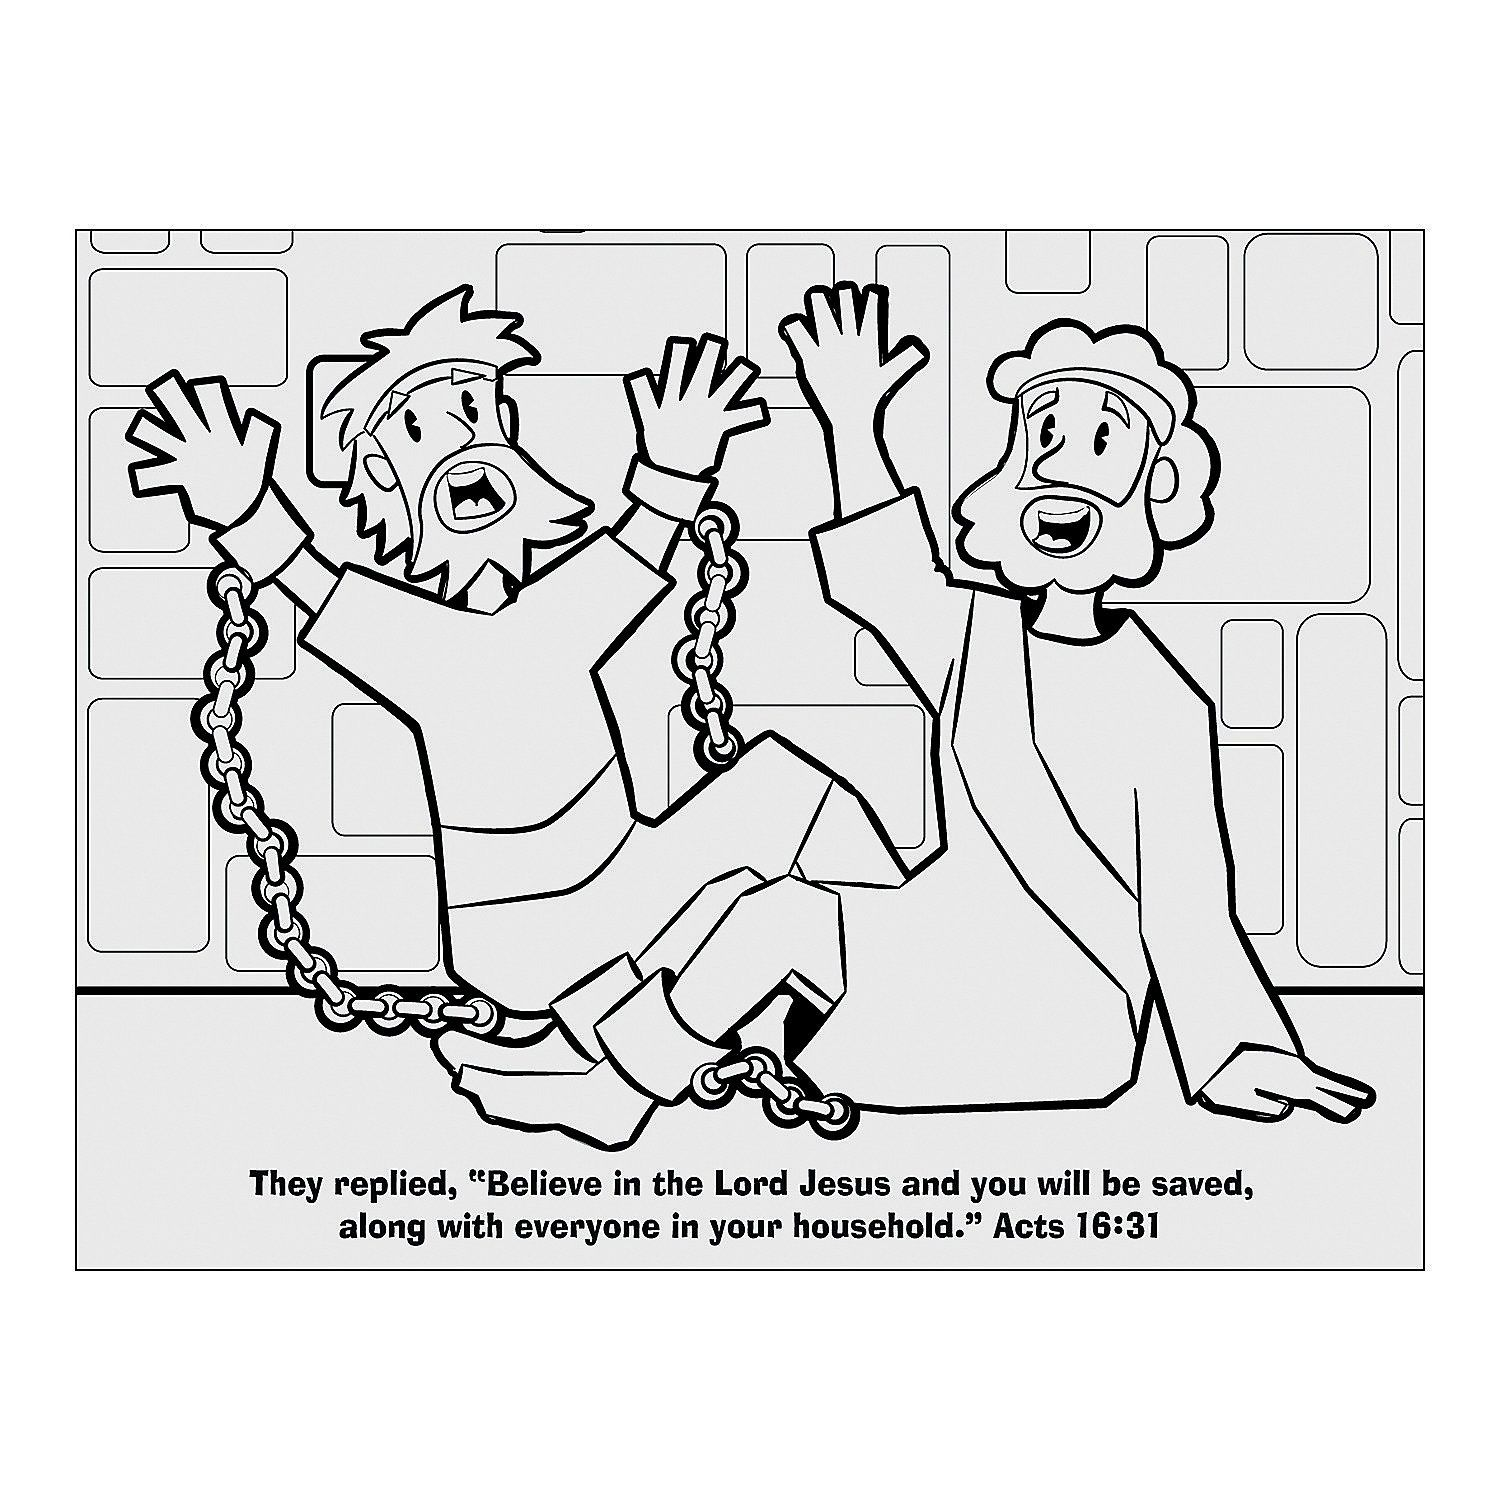 paul and silas coloring page sunday school coloring sheets paul silas bible school crafts. Black Bedroom Furniture Sets. Home Design Ideas